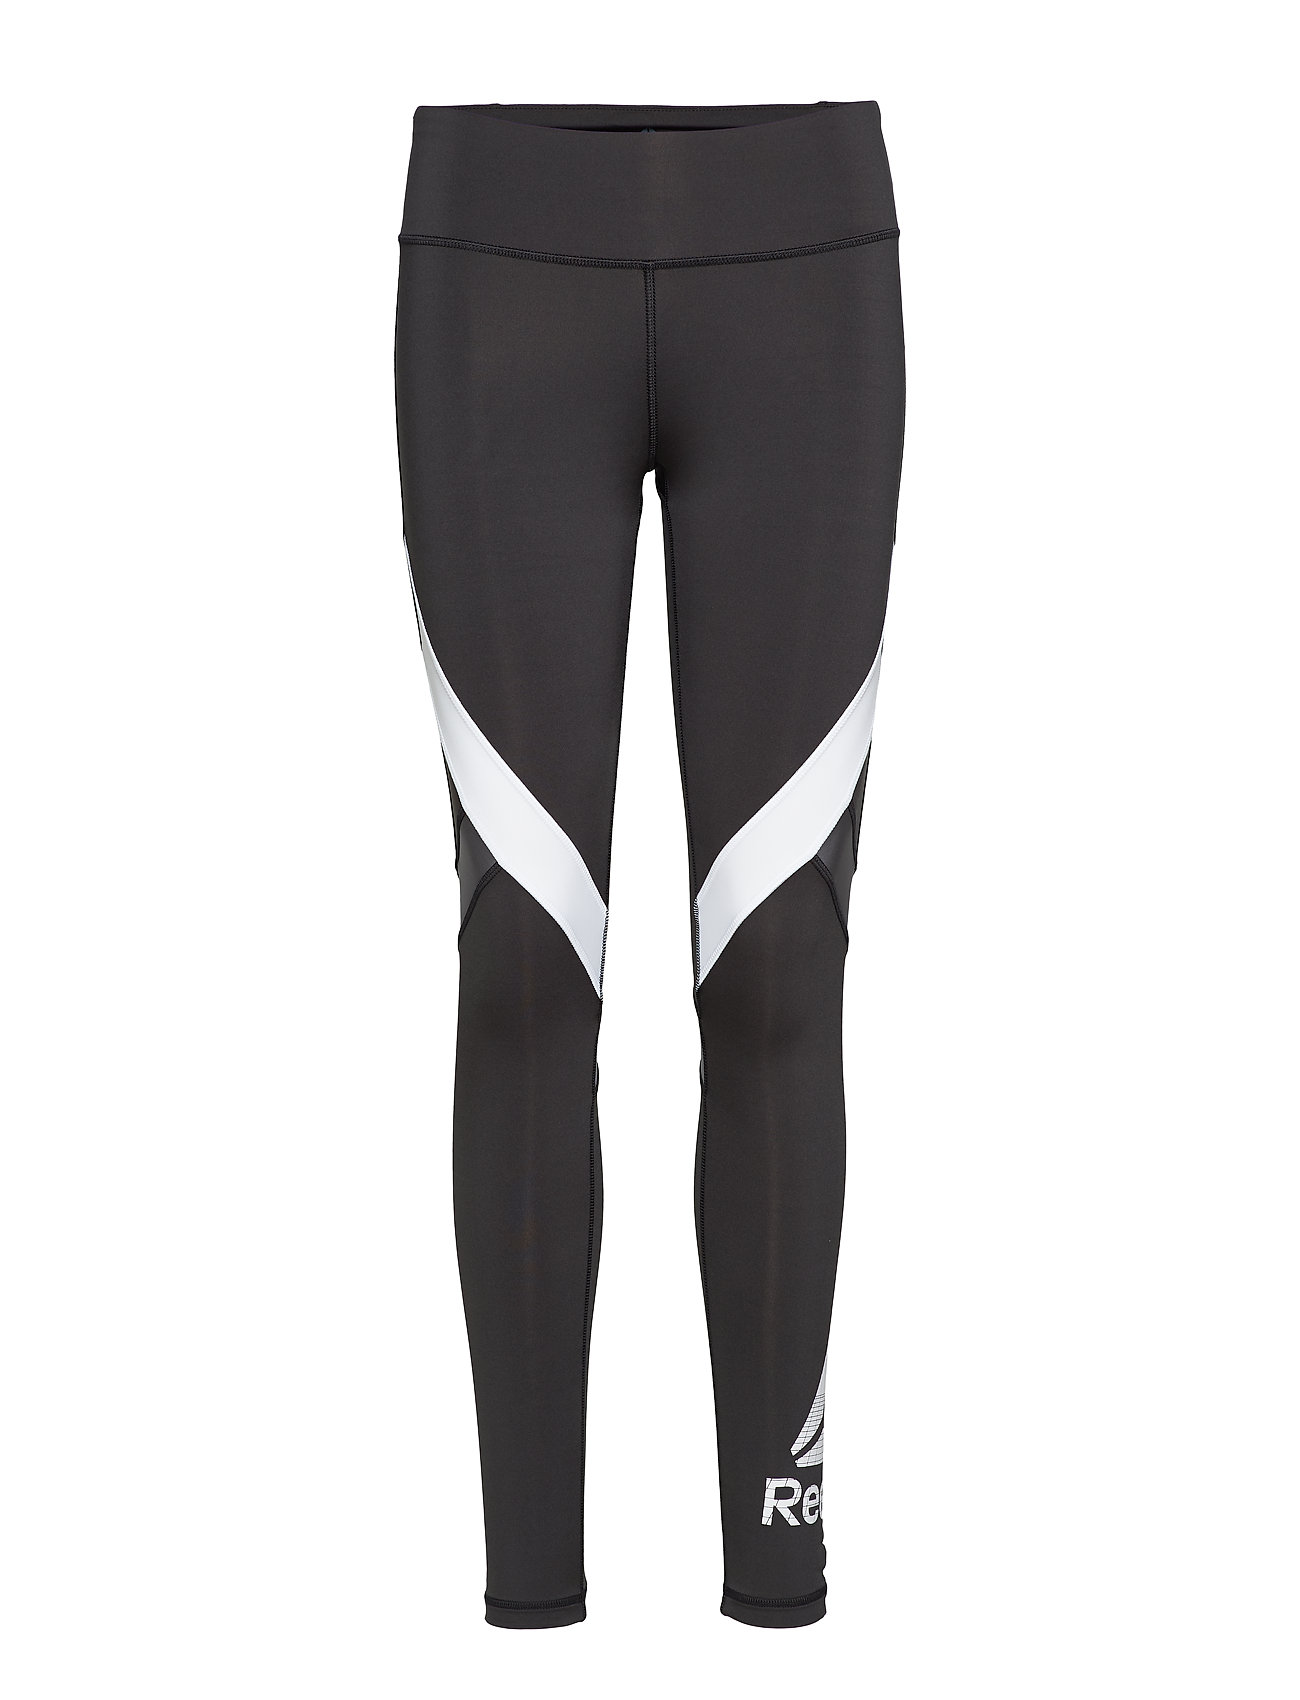 a2e620d899f Wor Big Delta Tight (Black) (25.97 €) - Reebok - | Boozt.com